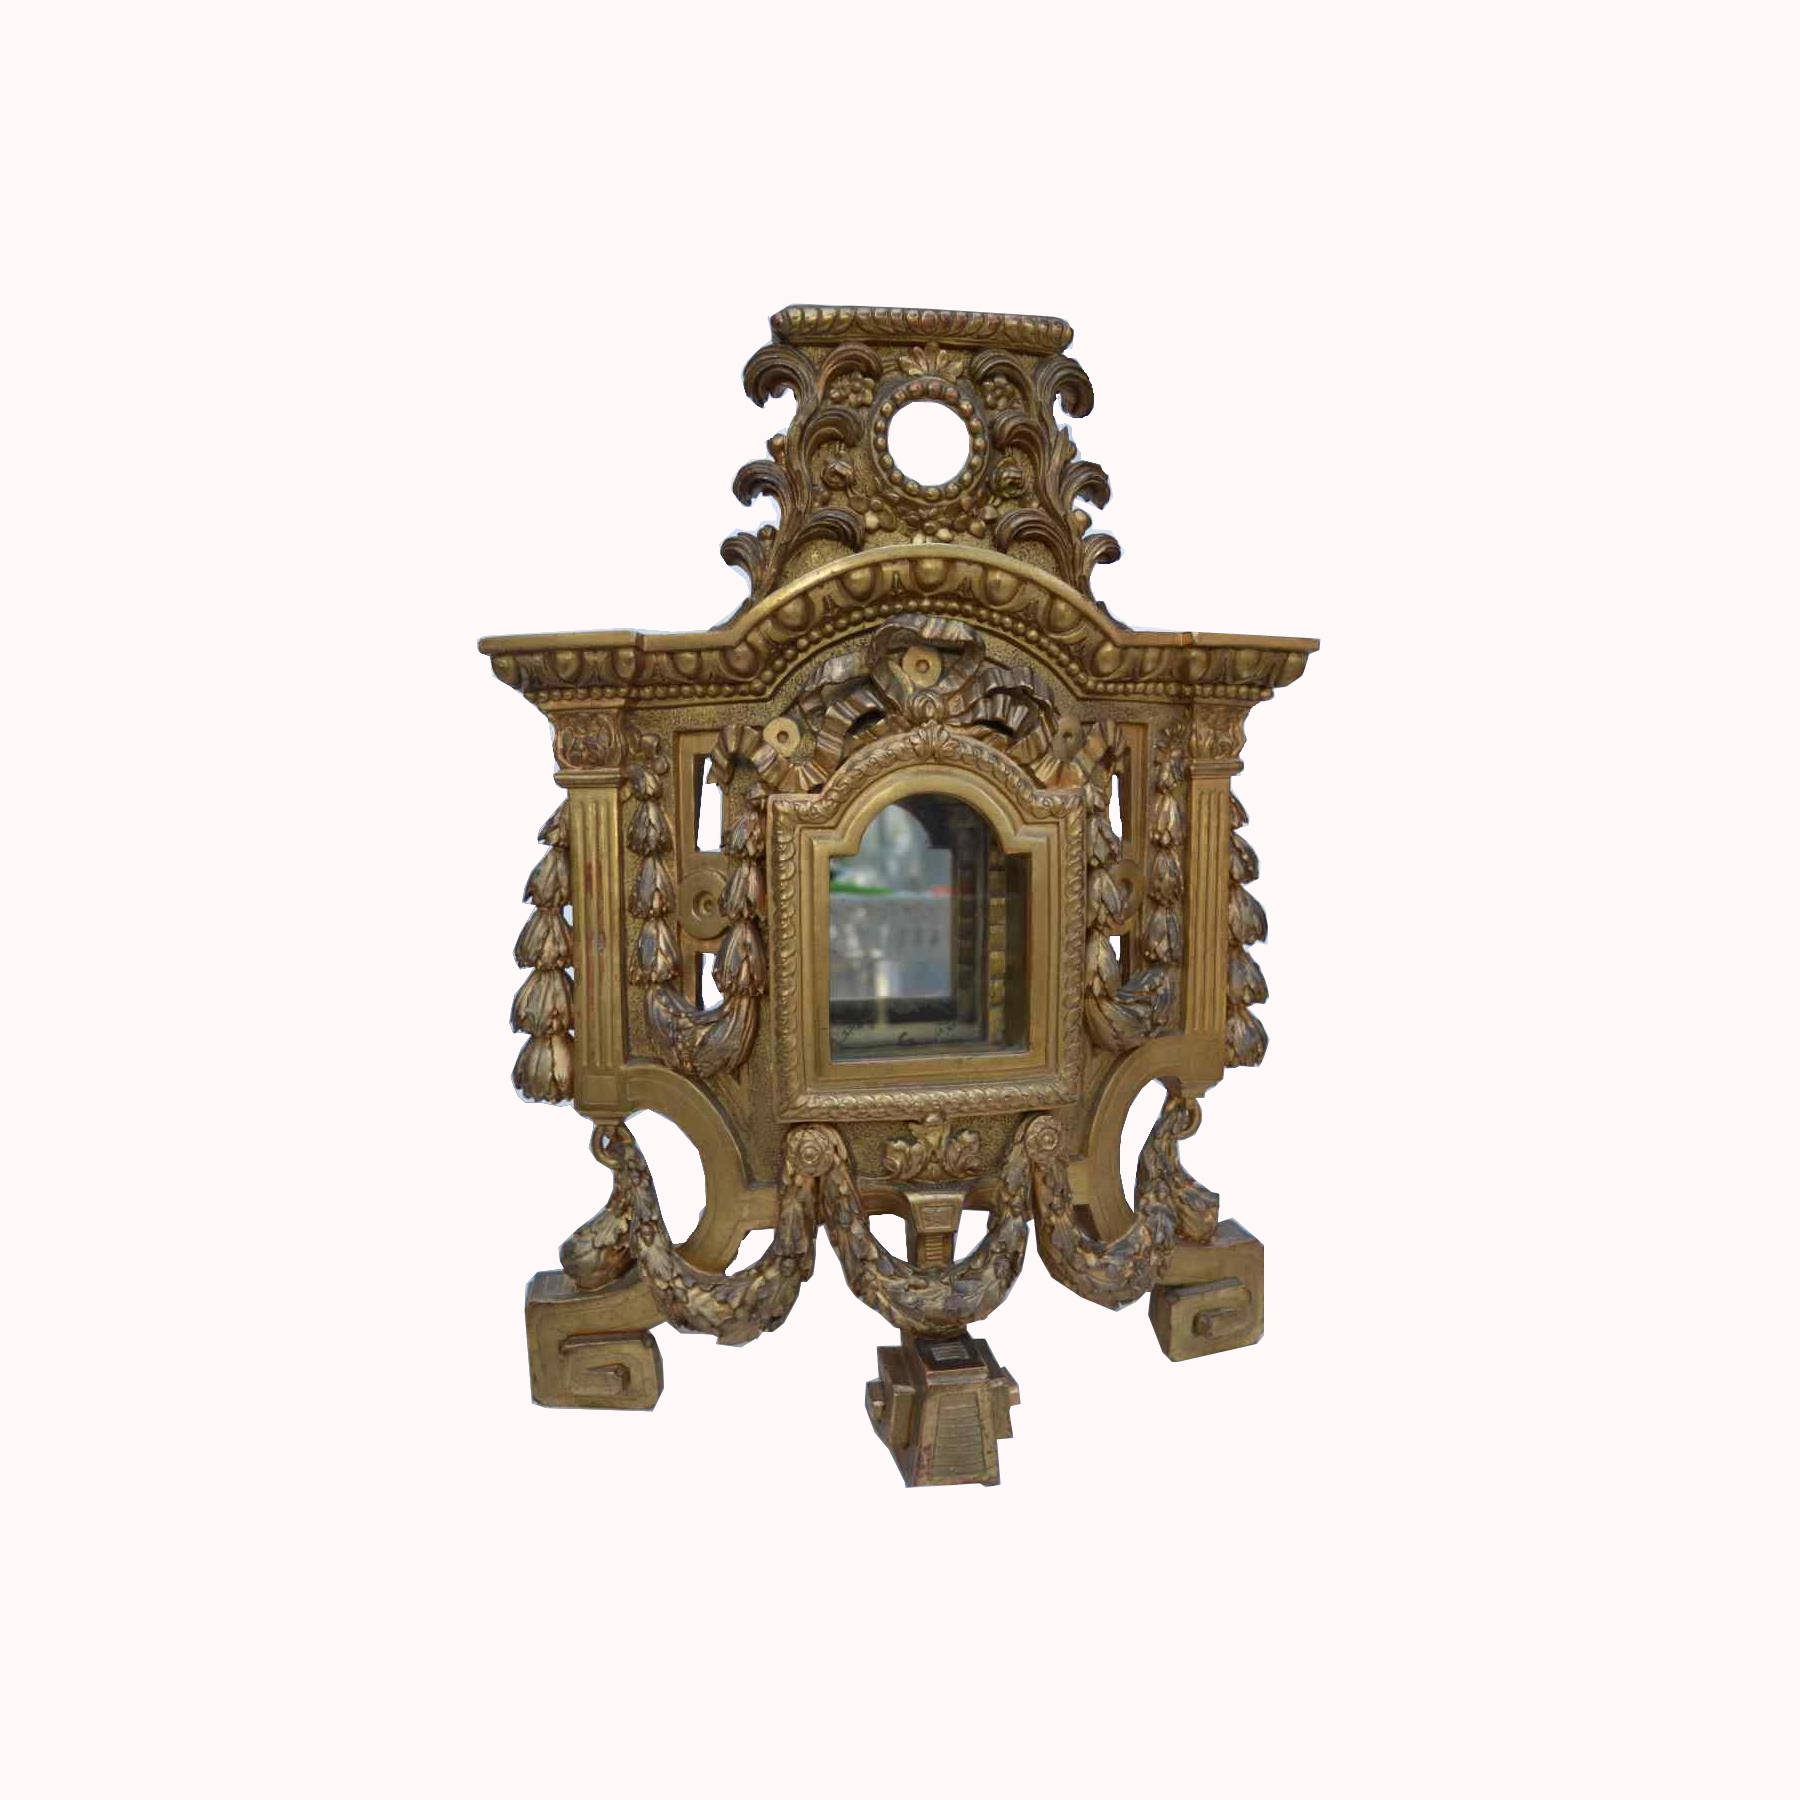 Large gilded wooden element, forming reliquary in its center